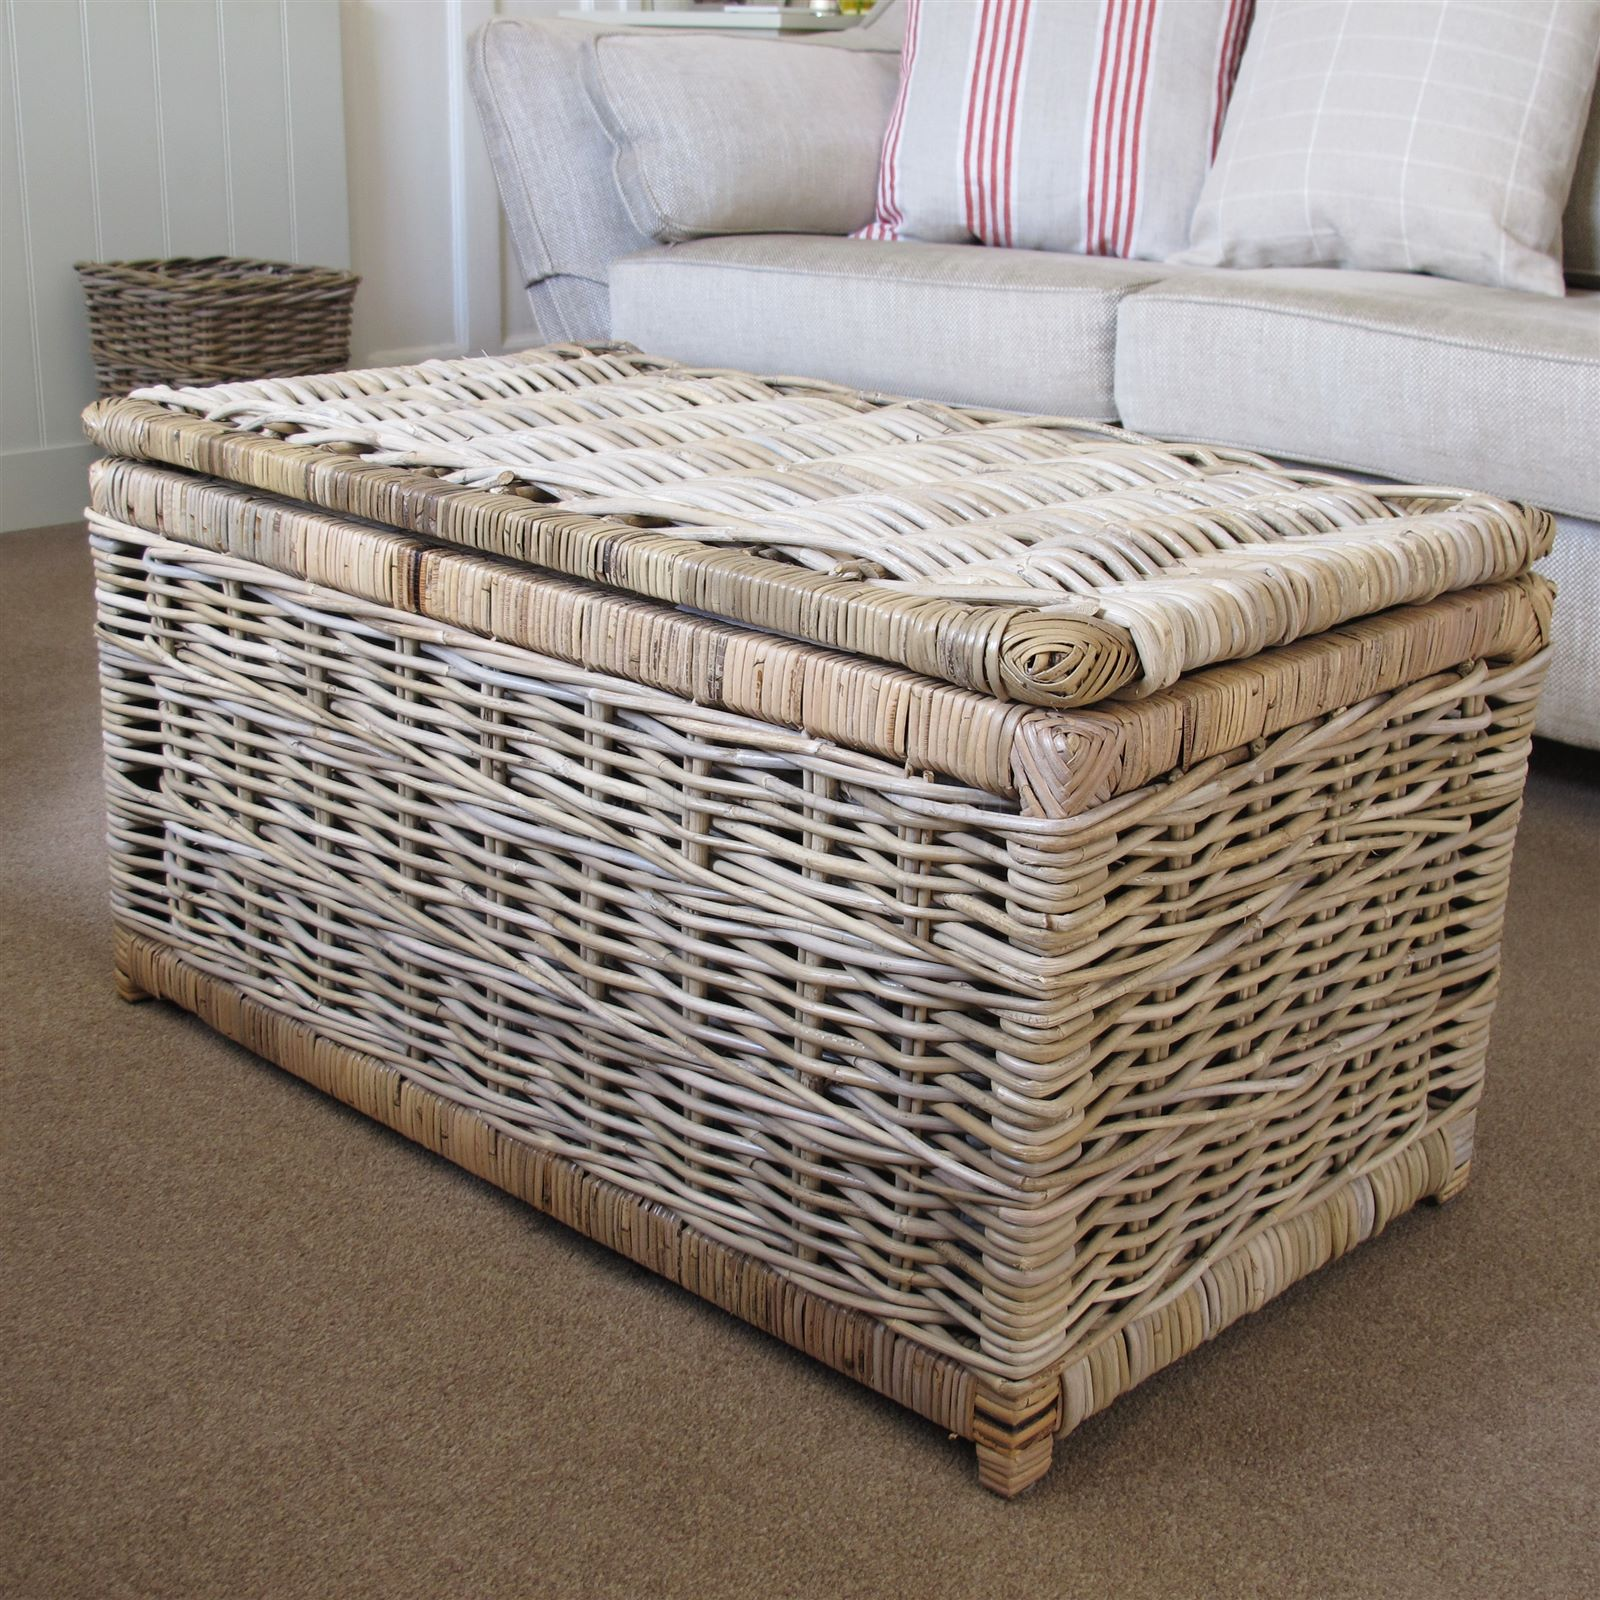 Wicker Trunks Royals Courage Tremendous Helpful Wicker Storage